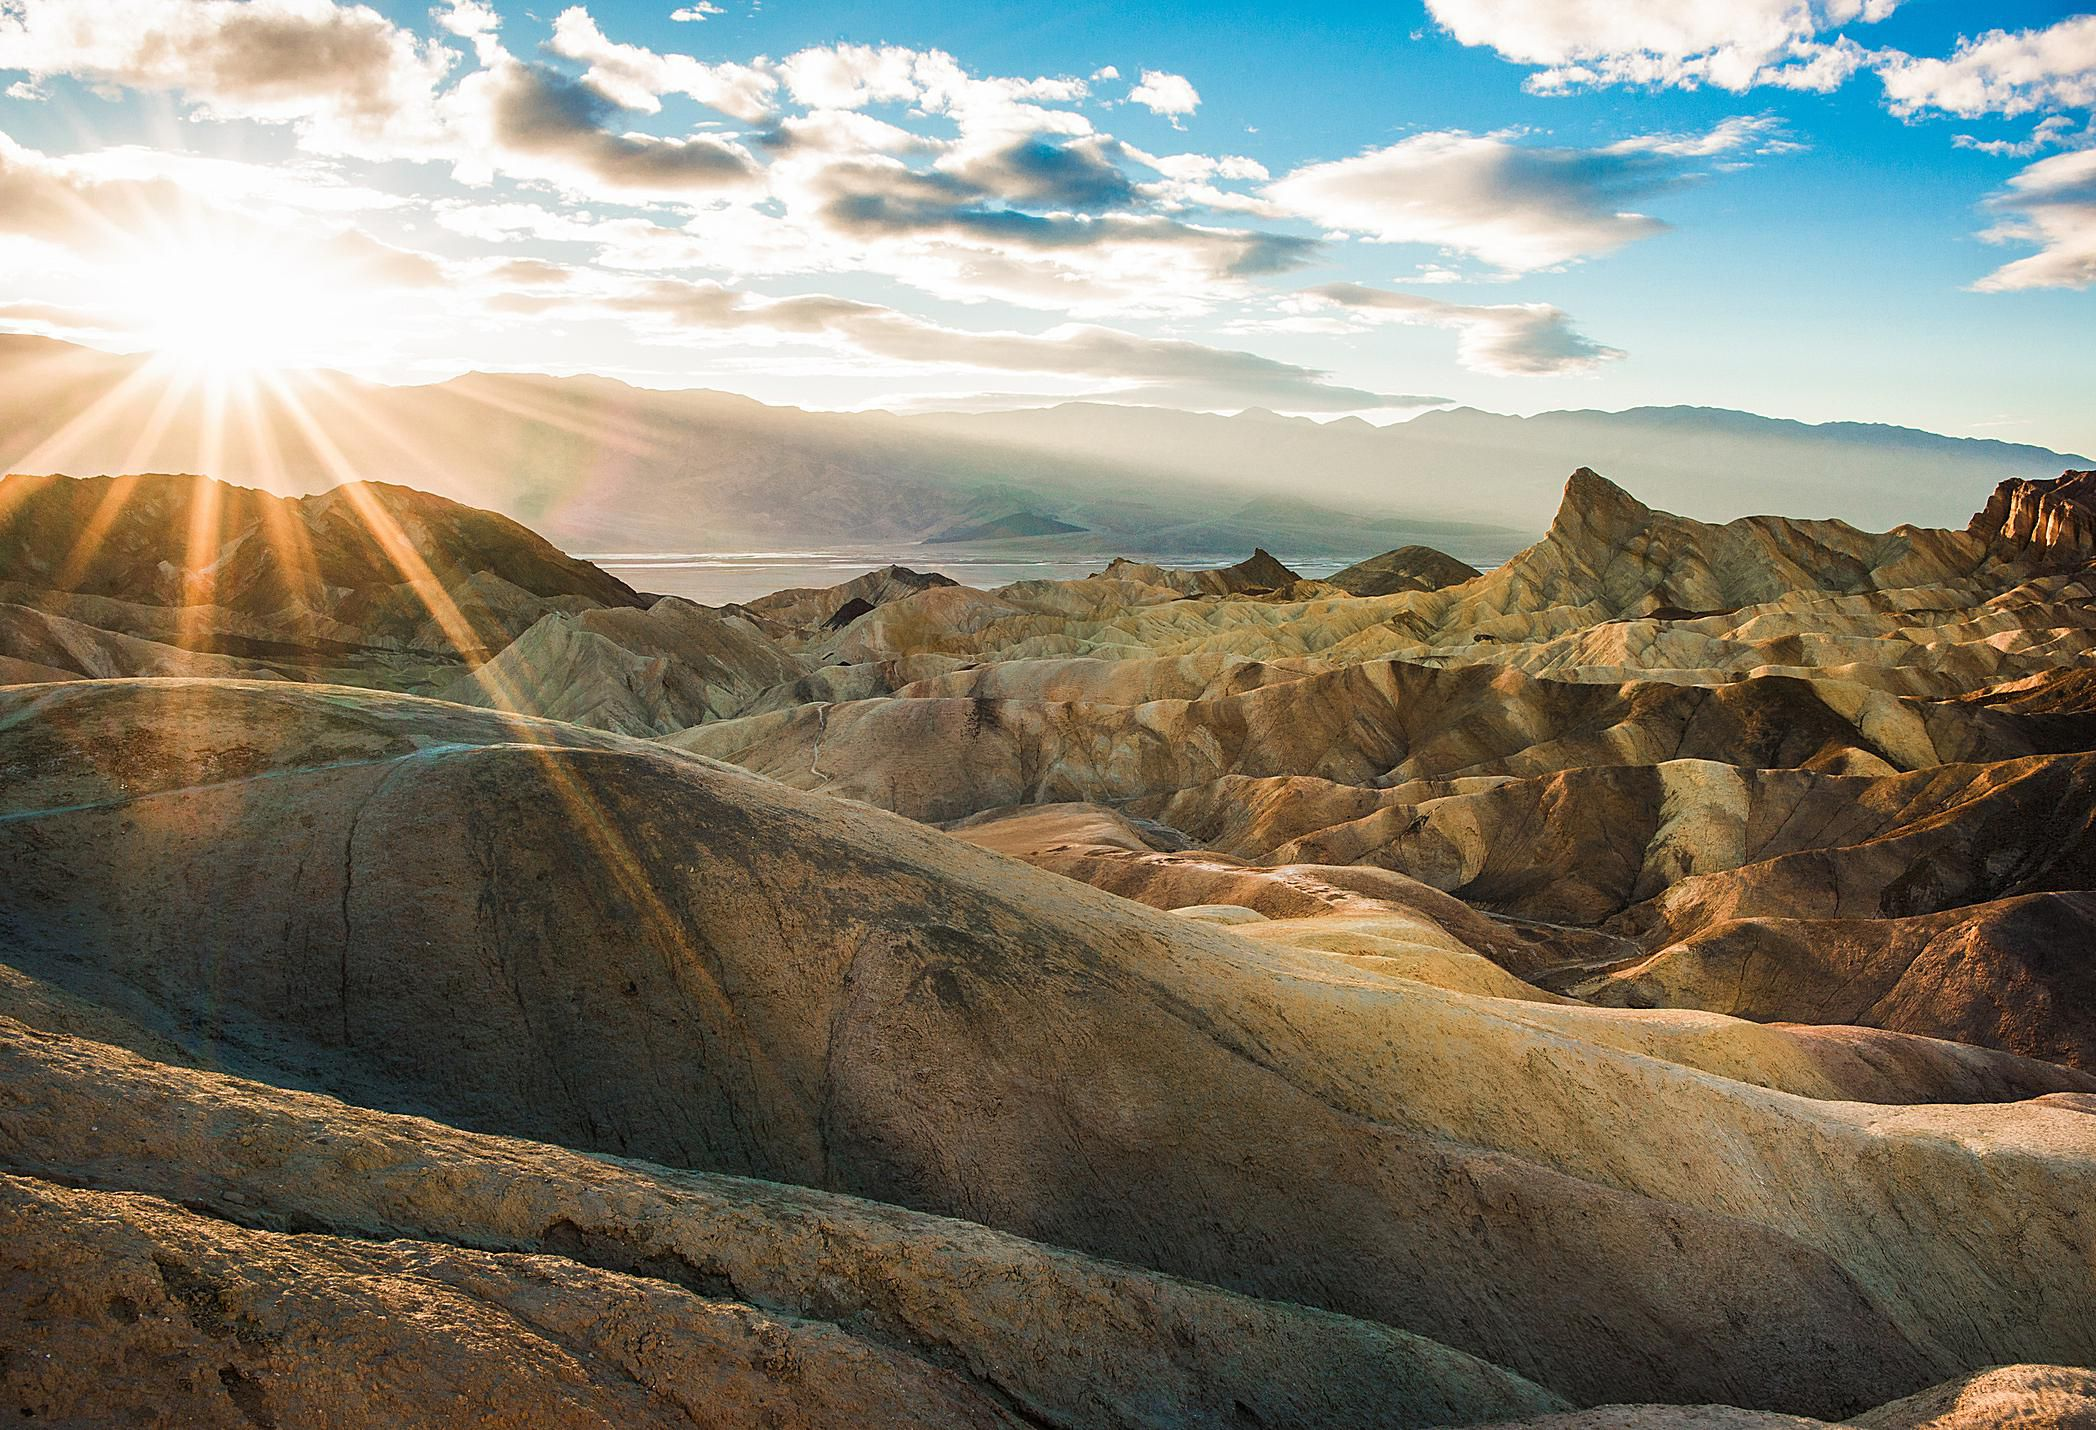 Geography of Death Valley